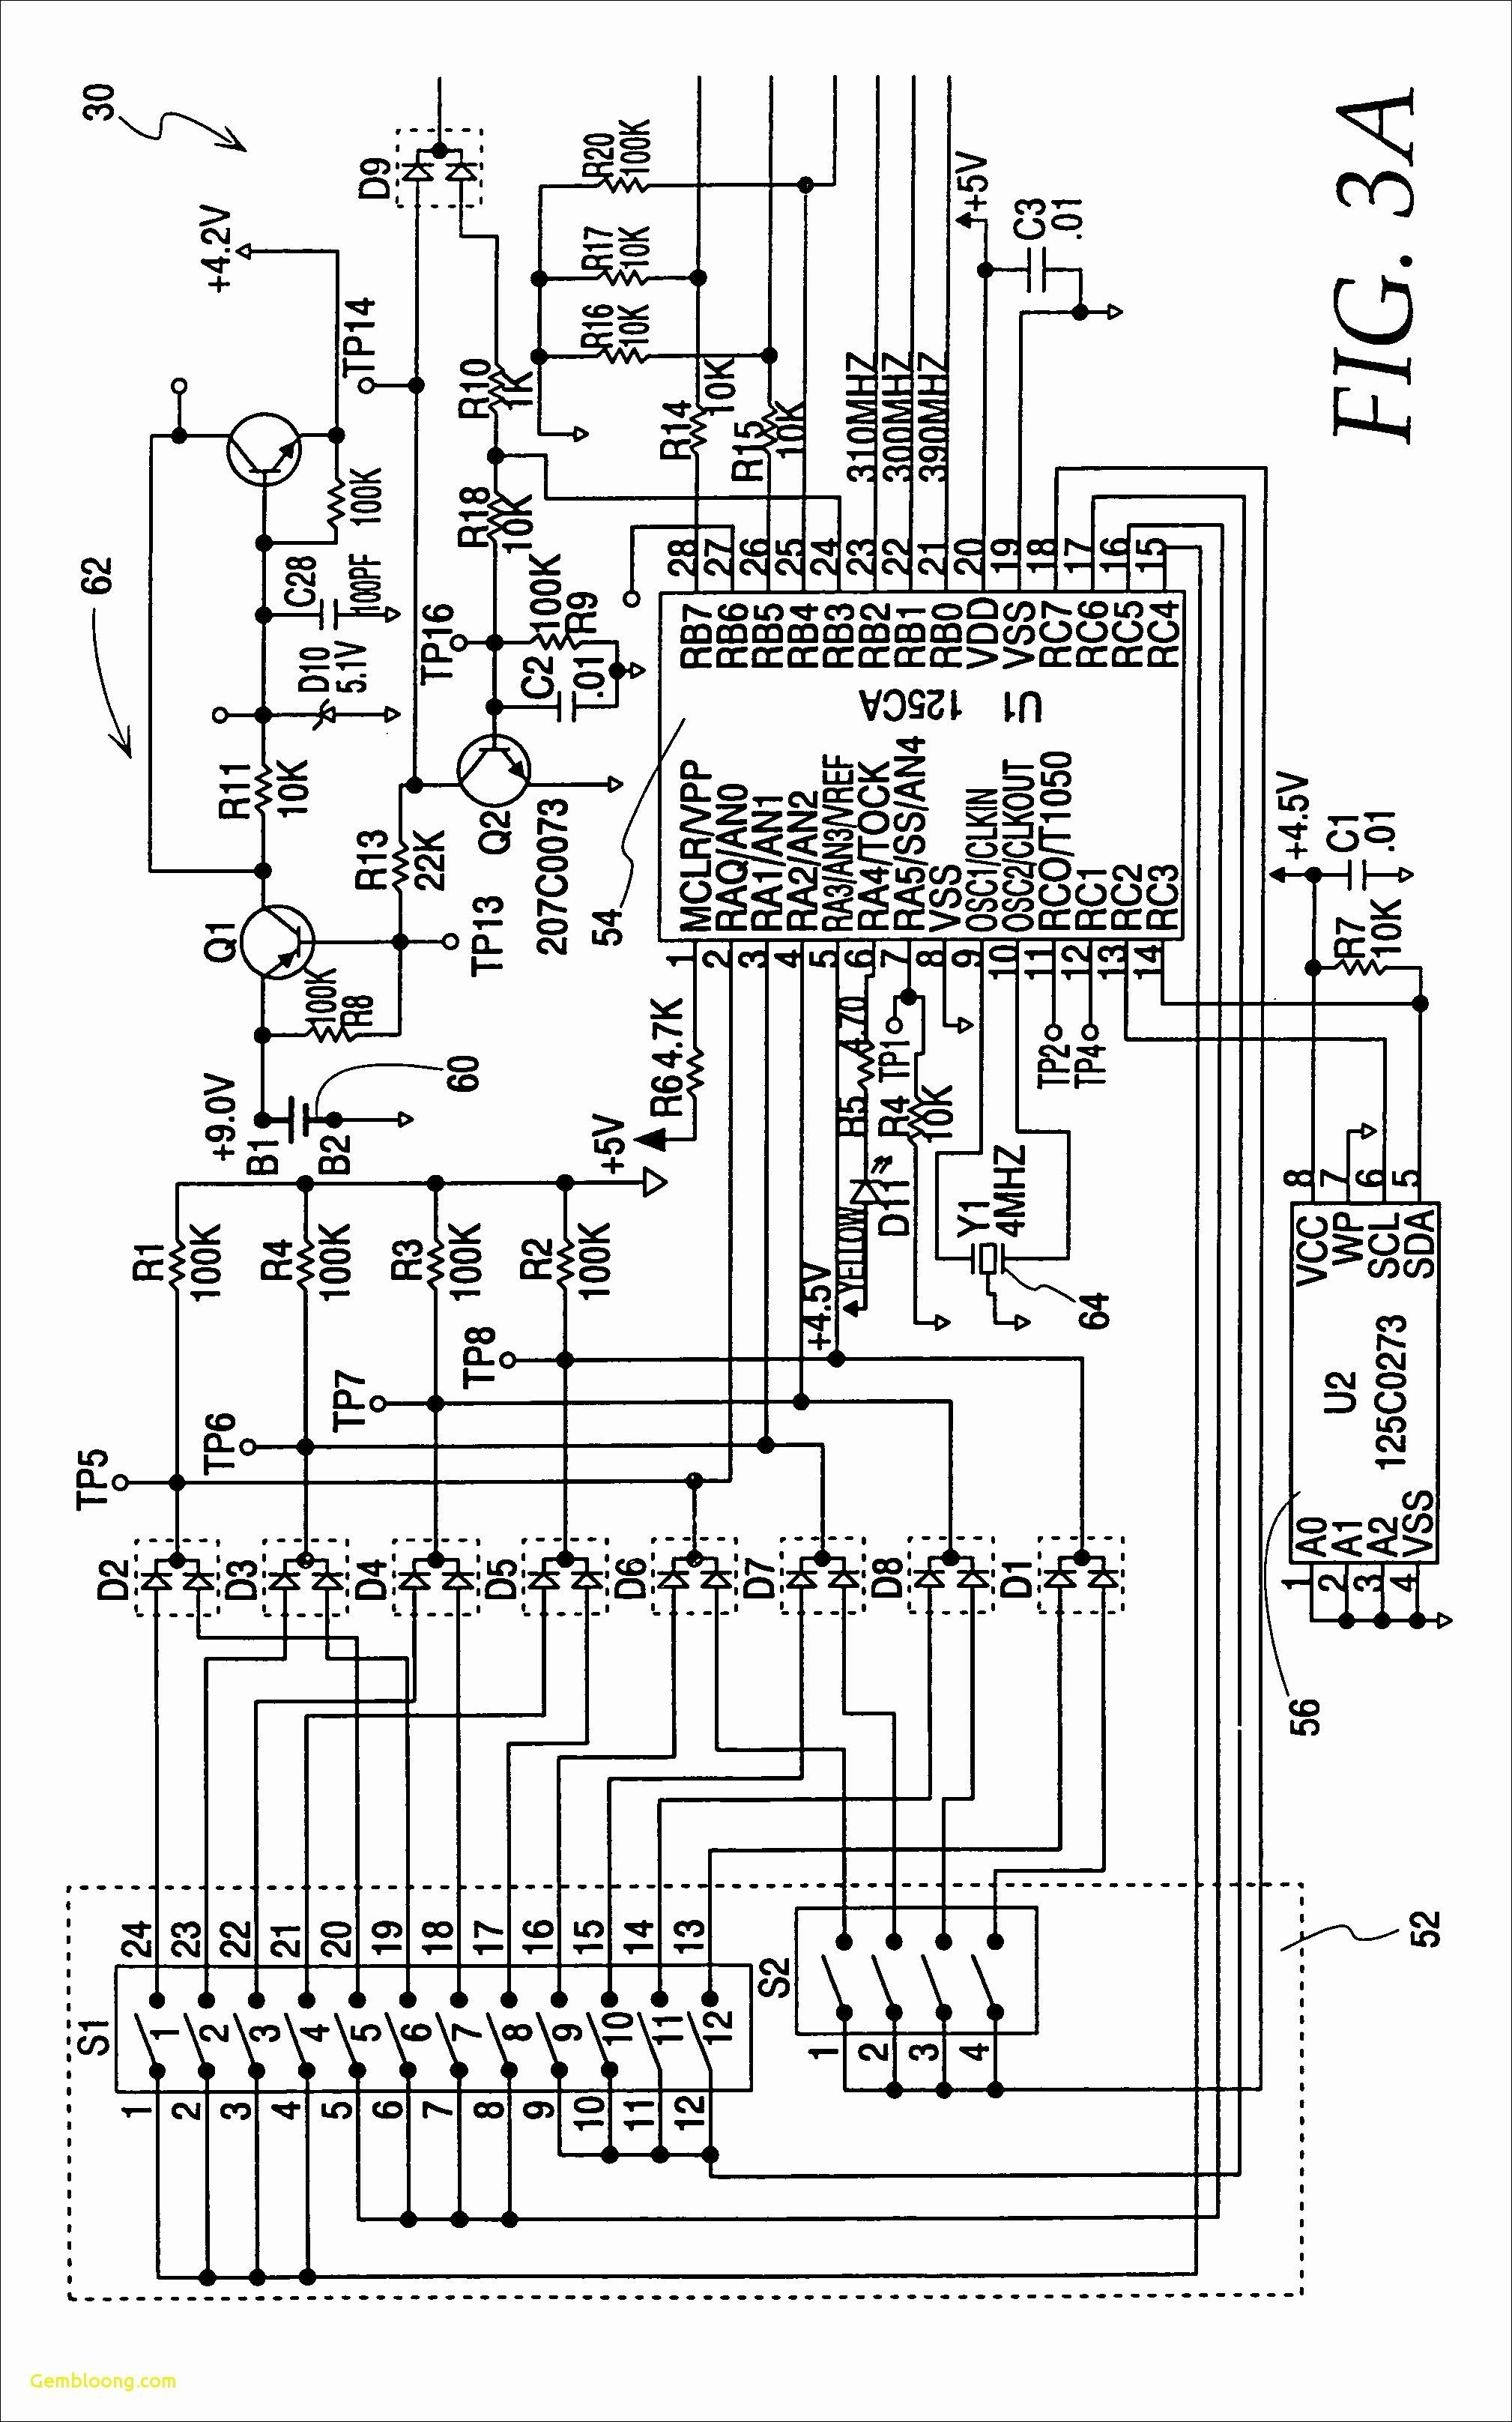 Unique Wiring Diagram For Domestic Consumer Unit